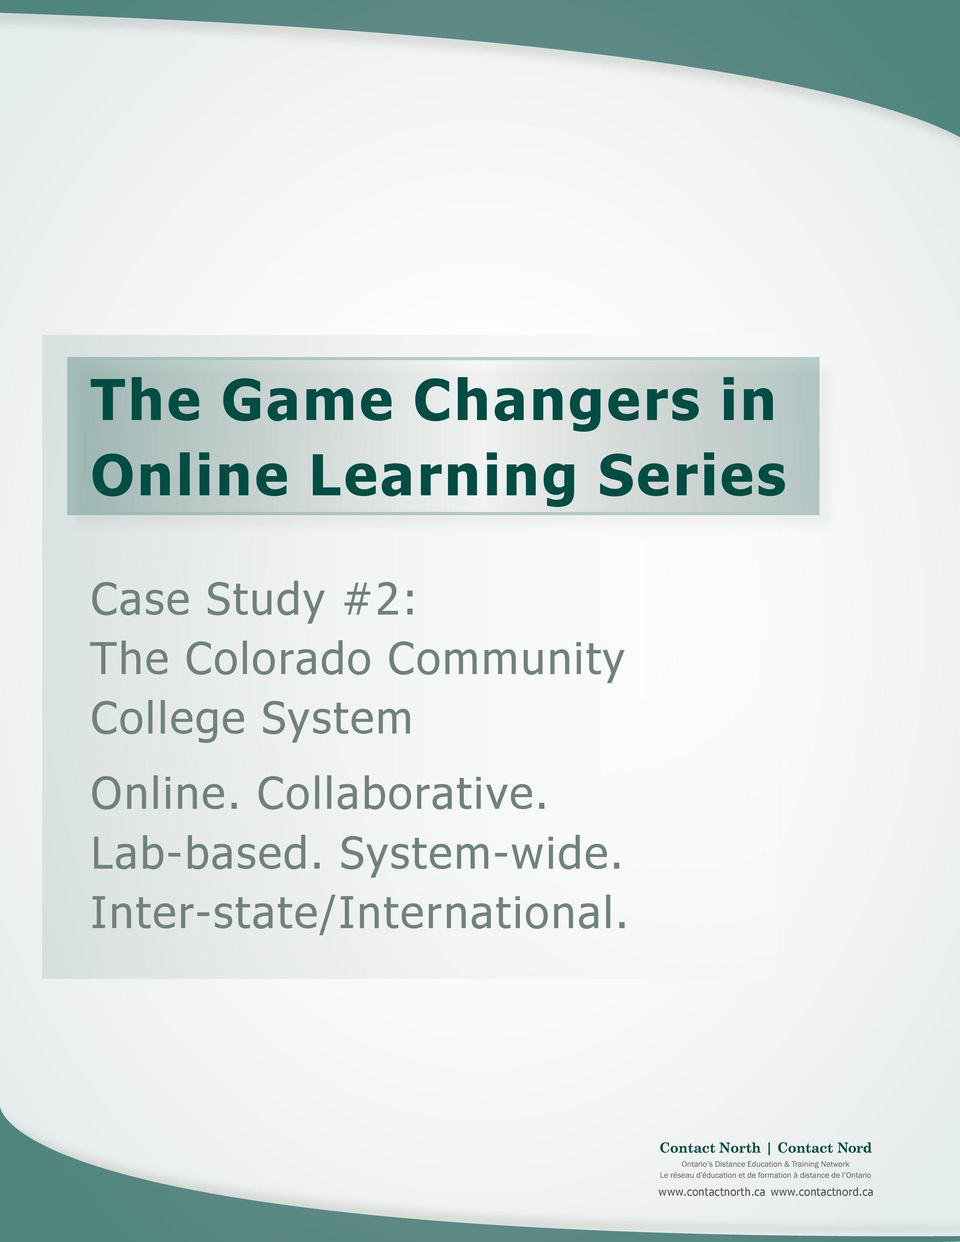 Online. Collaborative. Lab-based. System-wide.